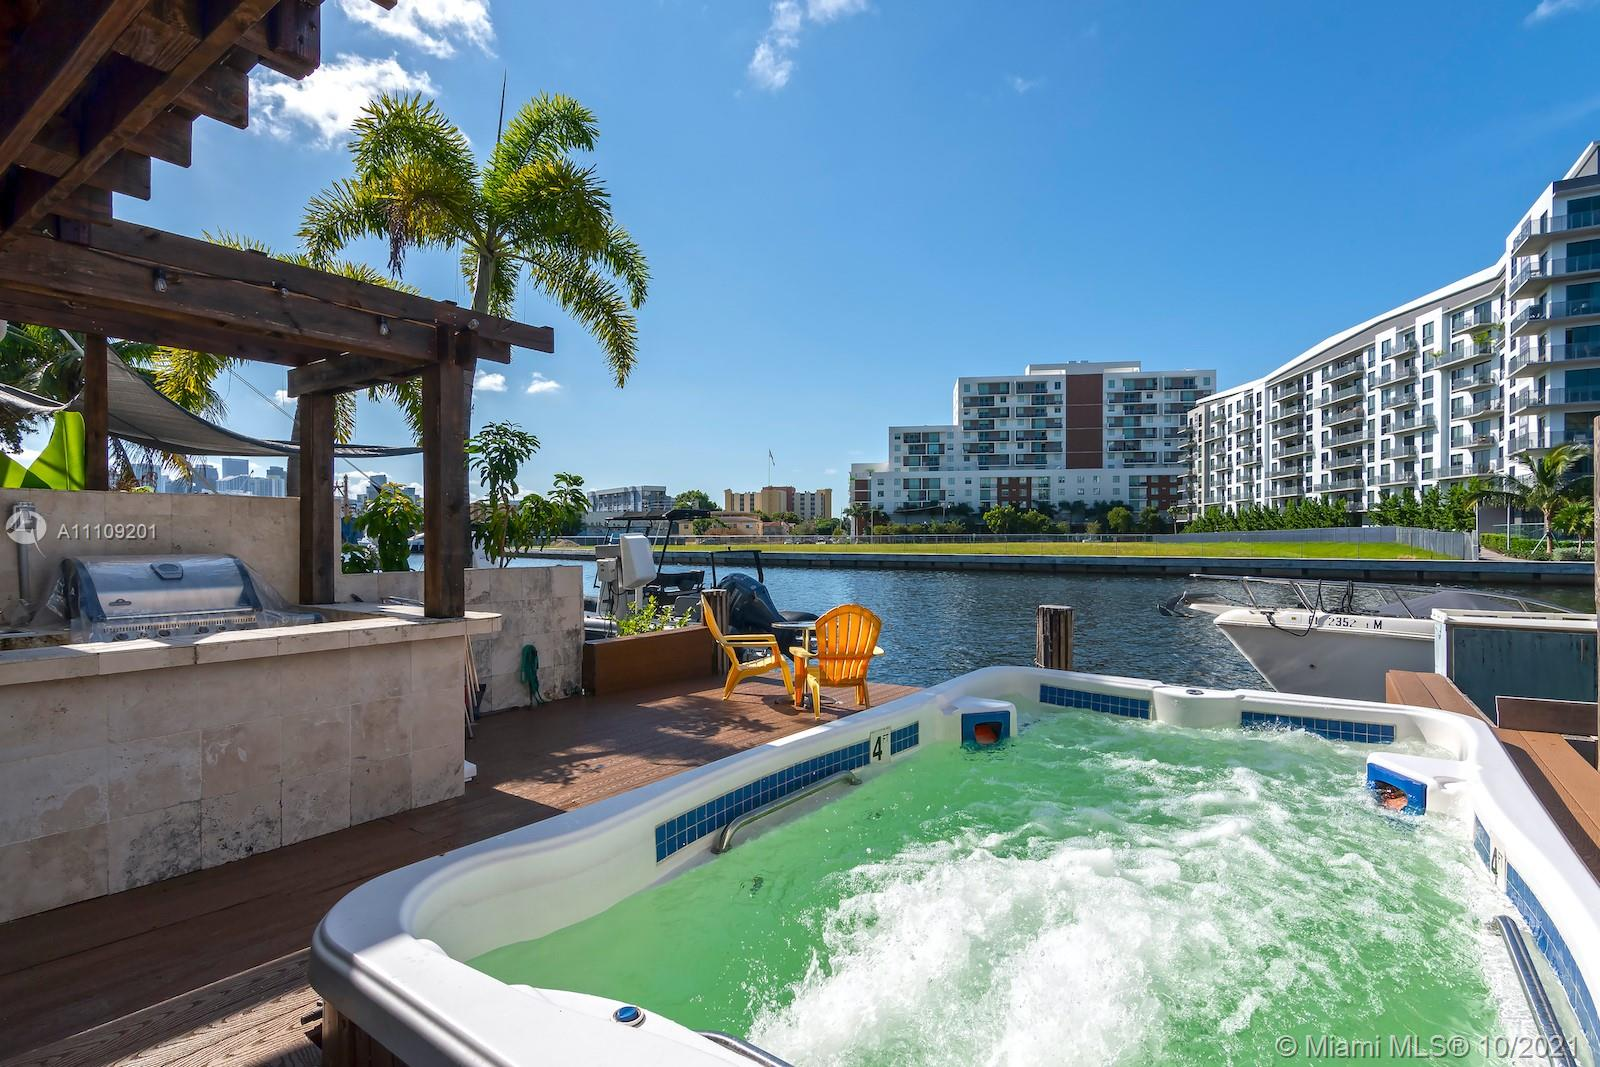 Single Family Home,For Rent,1036 NW North River Dr #1036, Miami, Florida 33136,Brickell,realty,broker,condos near me